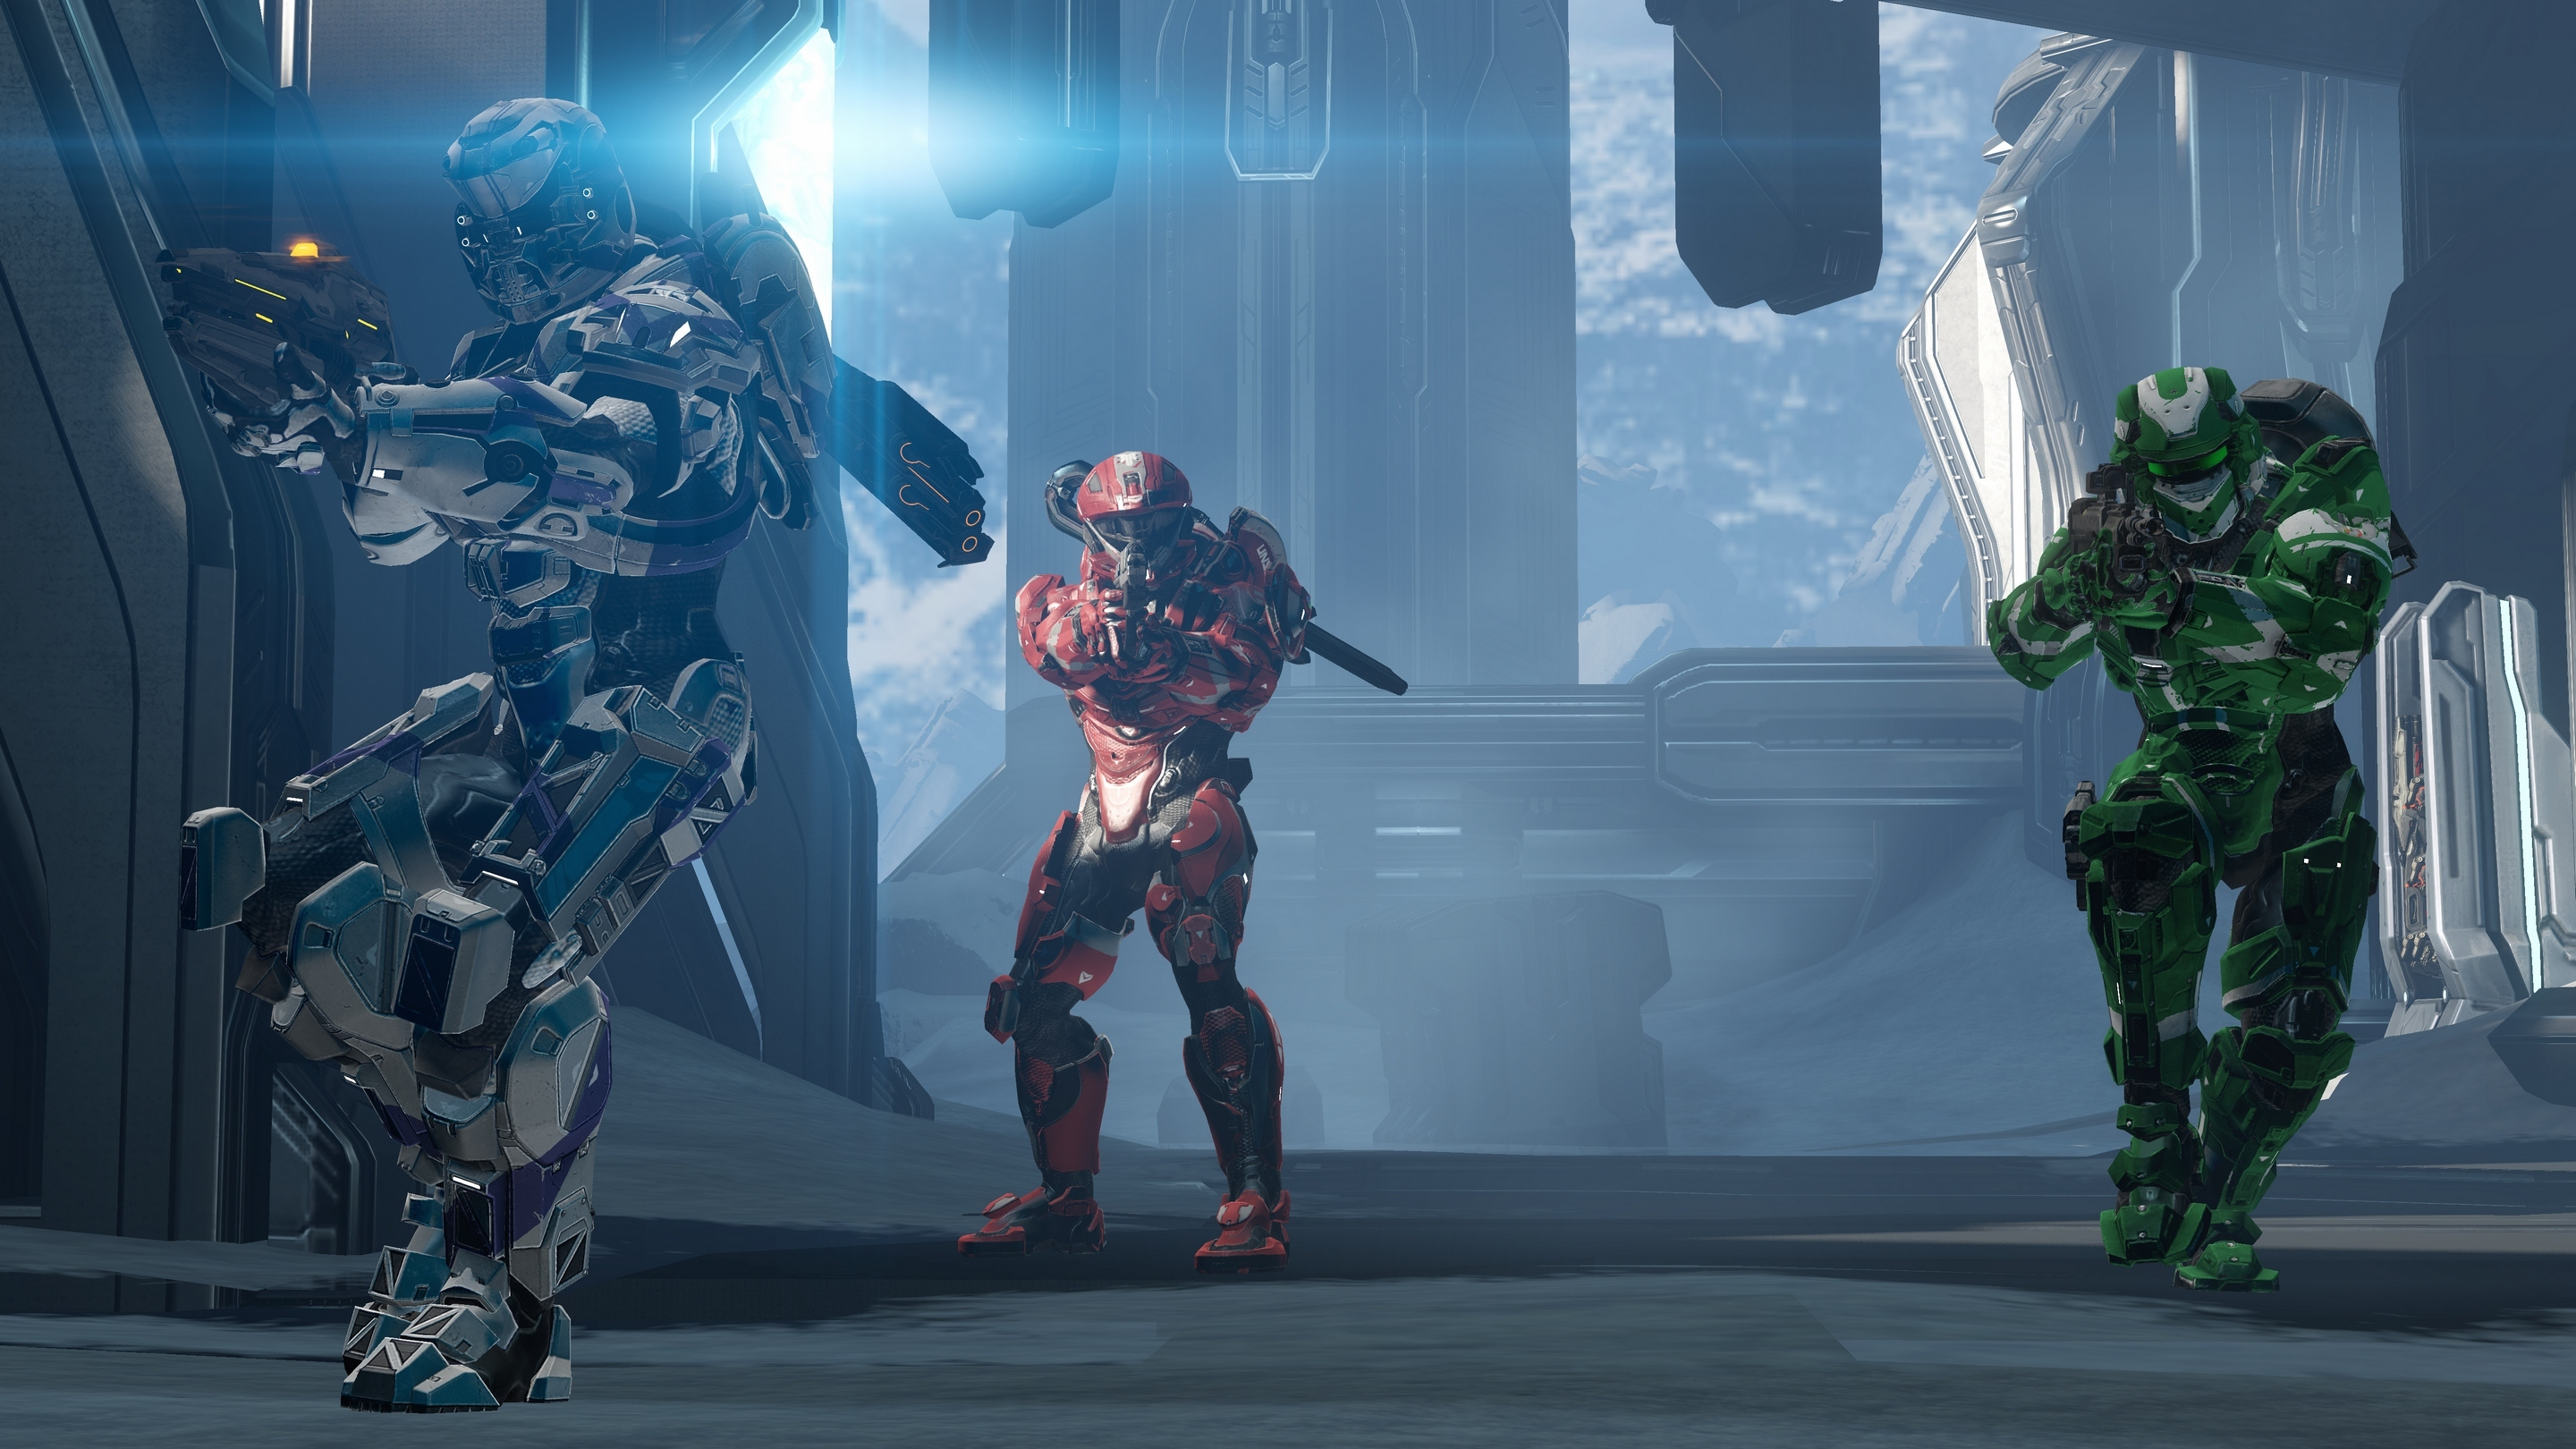 Halo 4 review: the ghost in the machine - Polygon